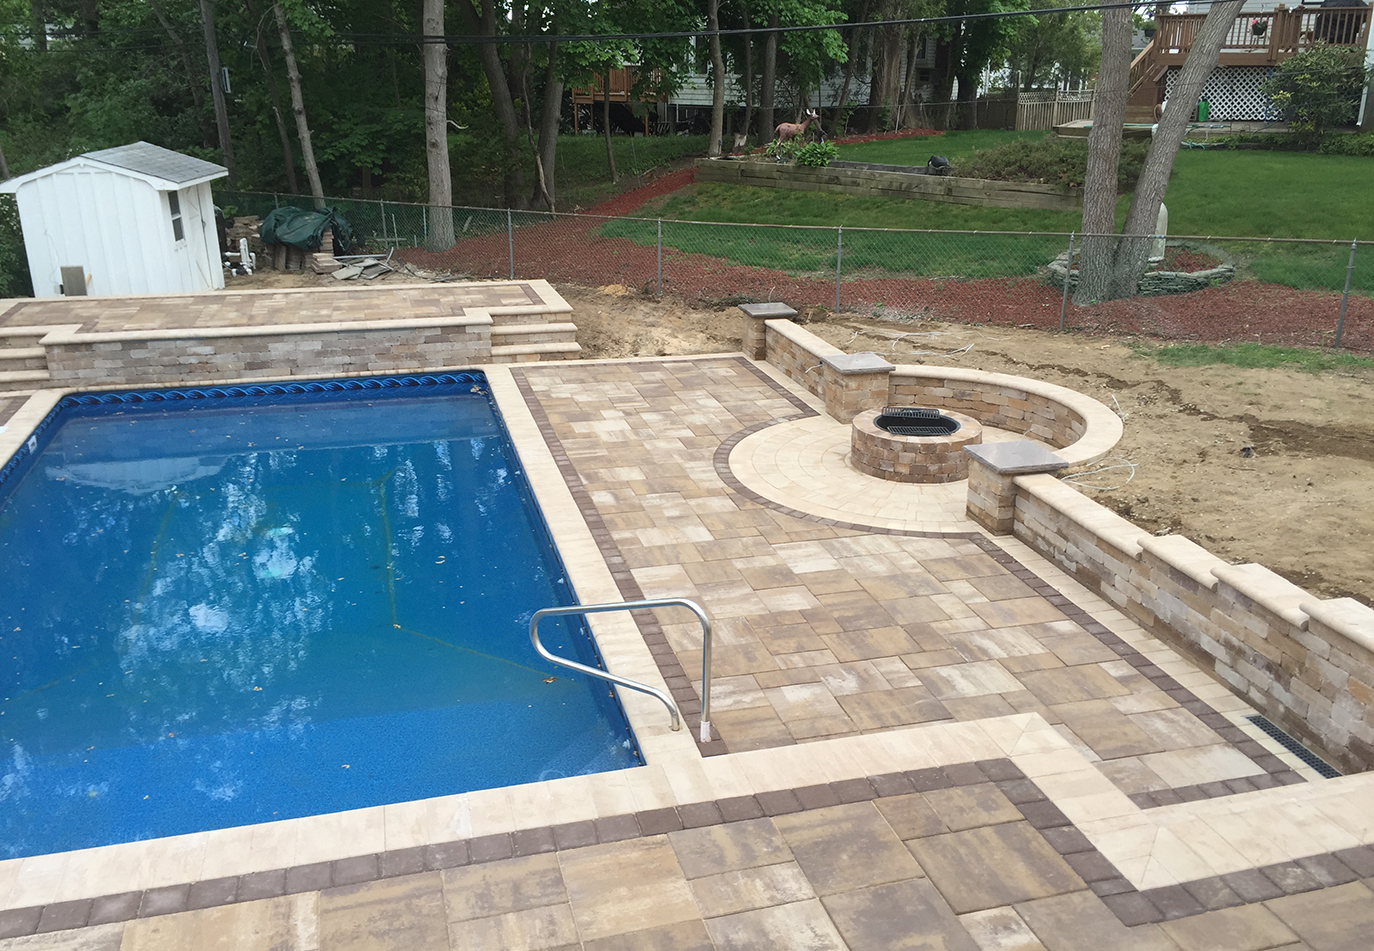 Masonry patio around pool with built in fire pit and stone seating wall